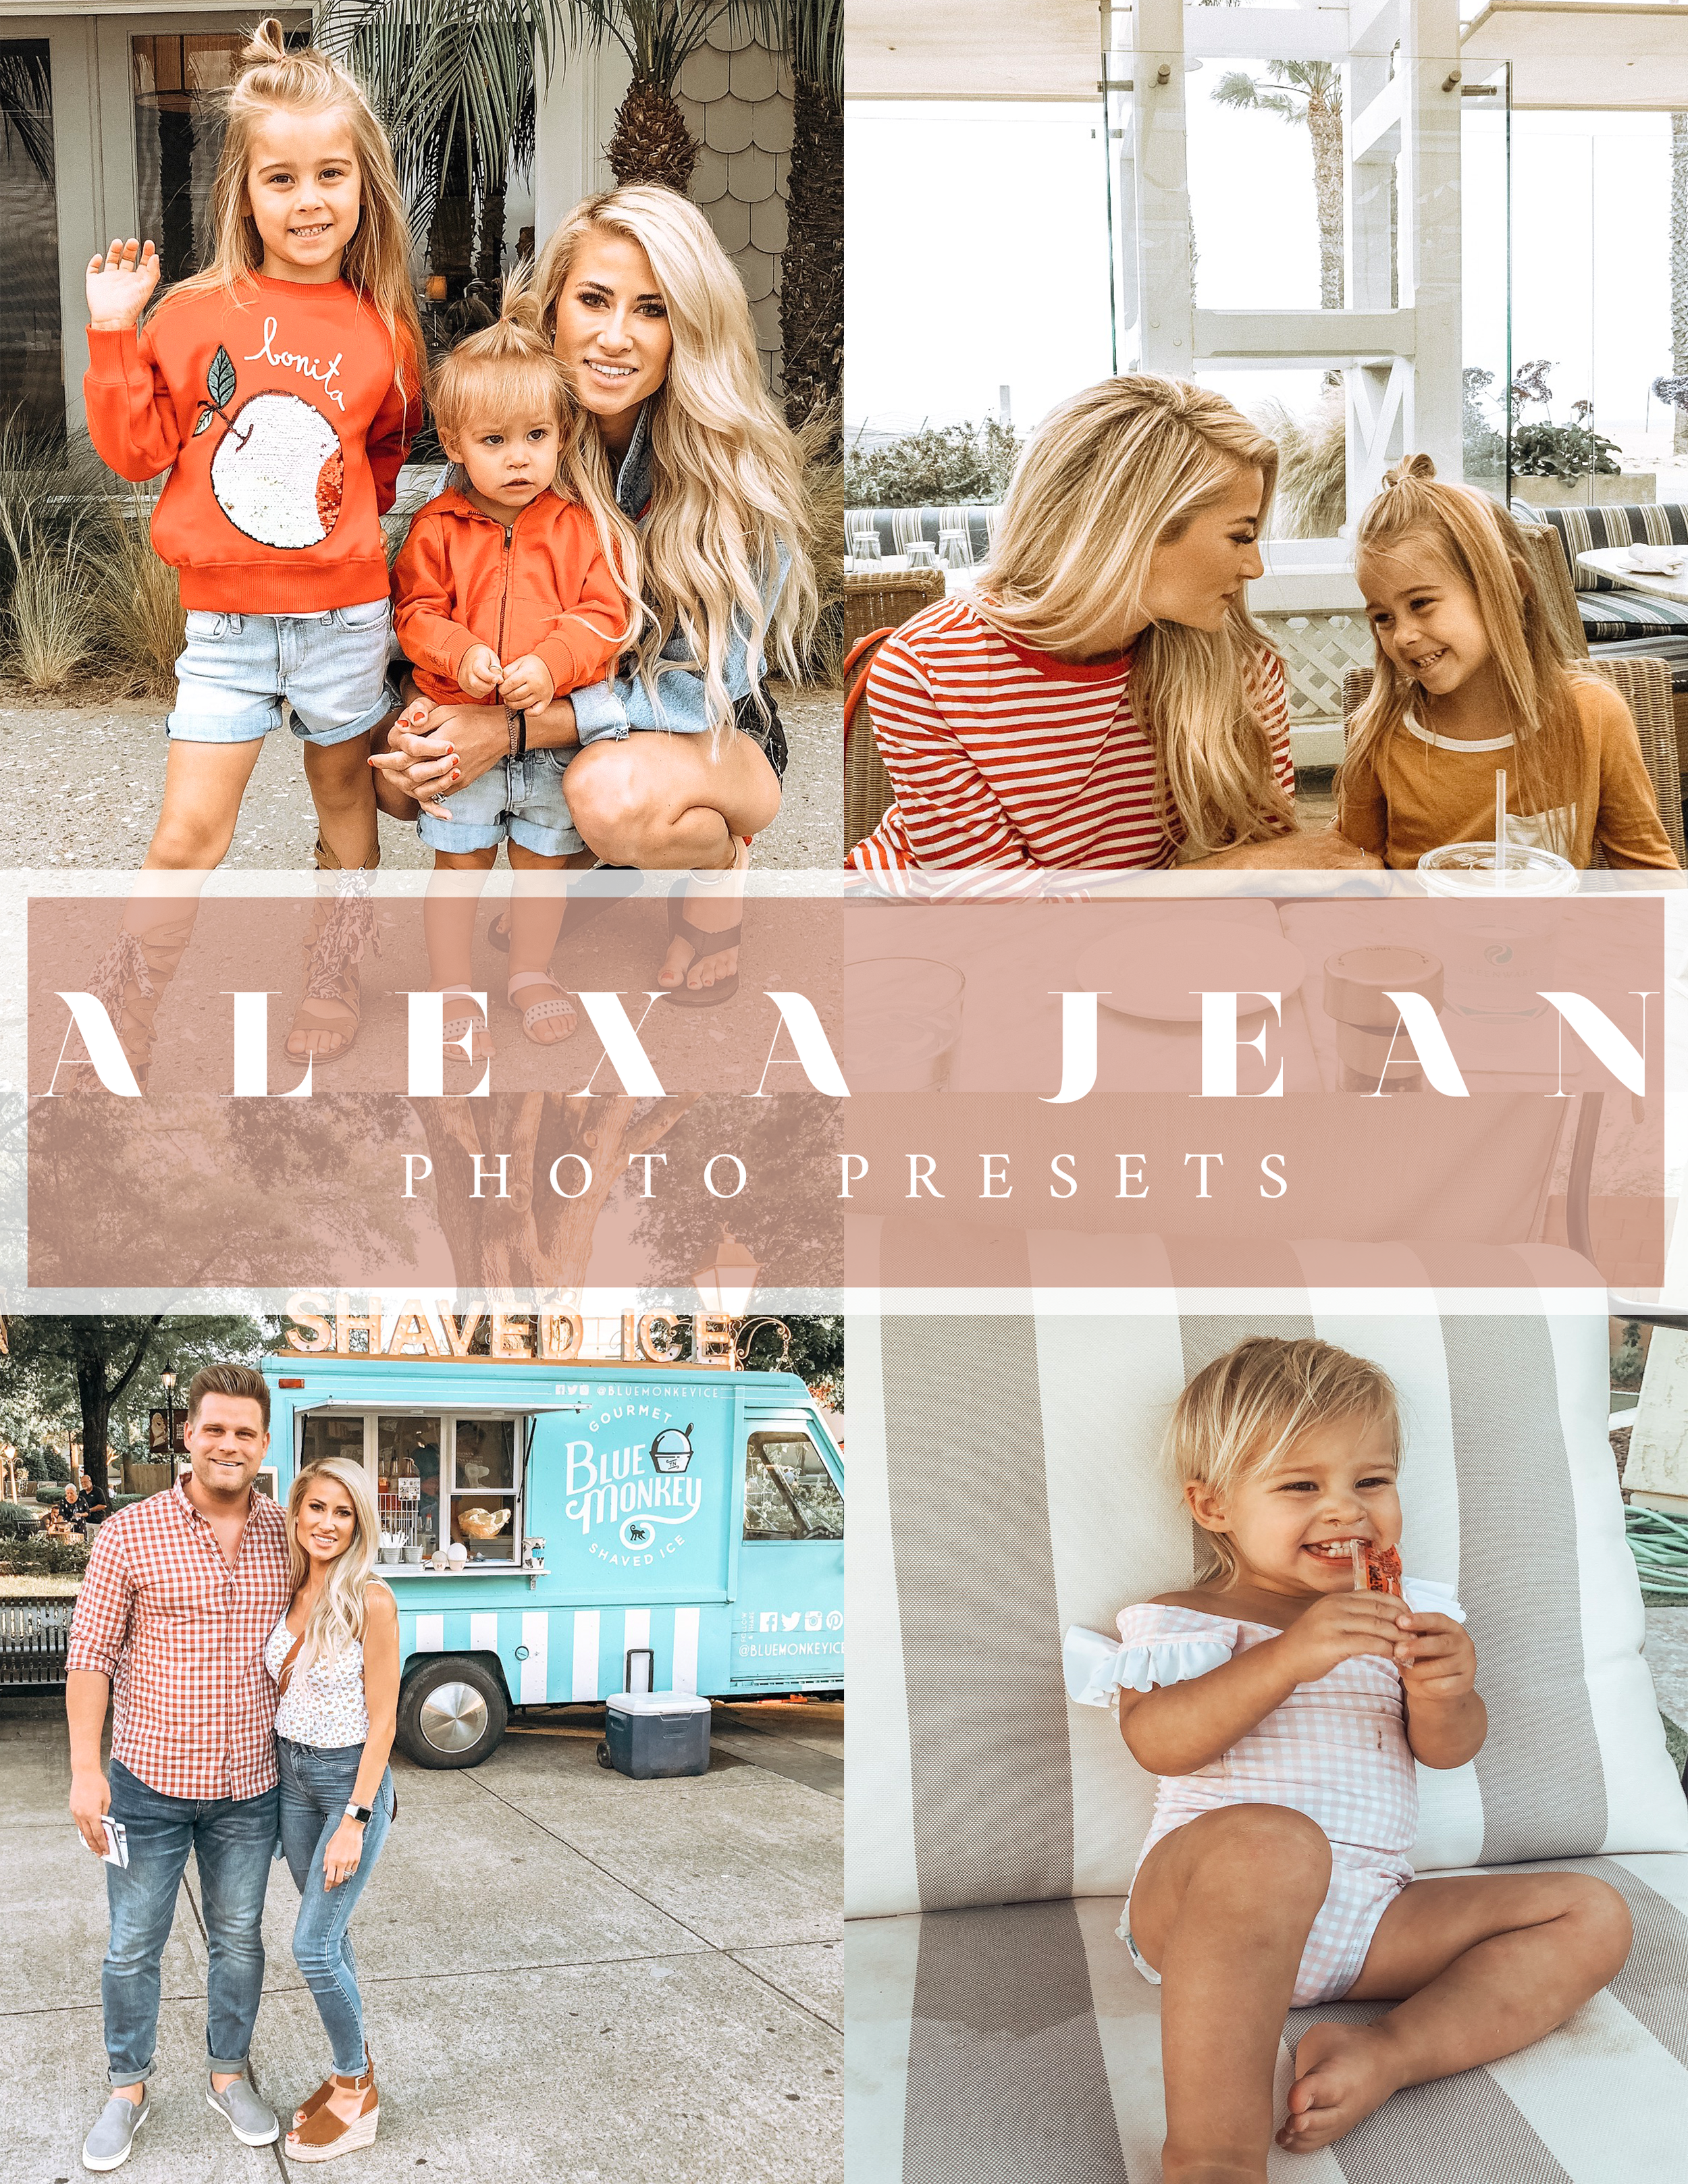 Alexa-Jean-Brown-Photo-Presets